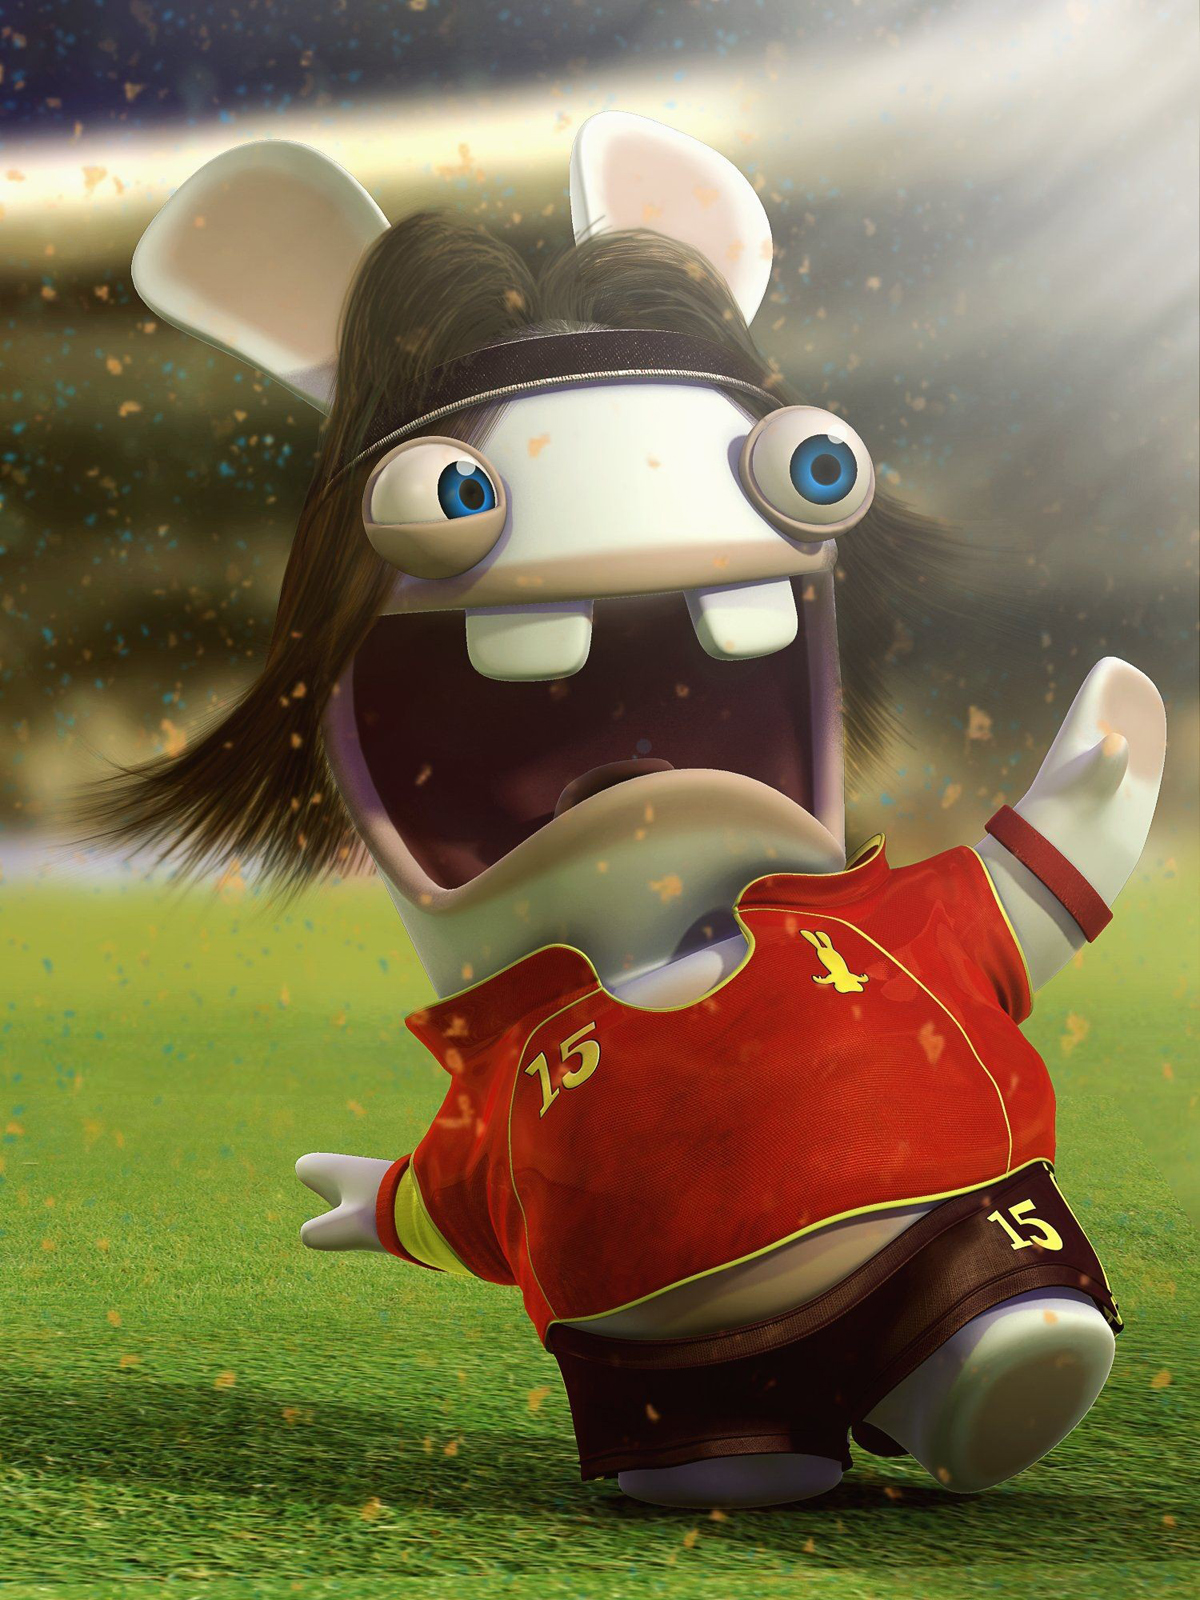 3d Golf Wallpaper For The Home Funny Rayman Raving Rabbits Hd Wallpapers Hd Wallpapers